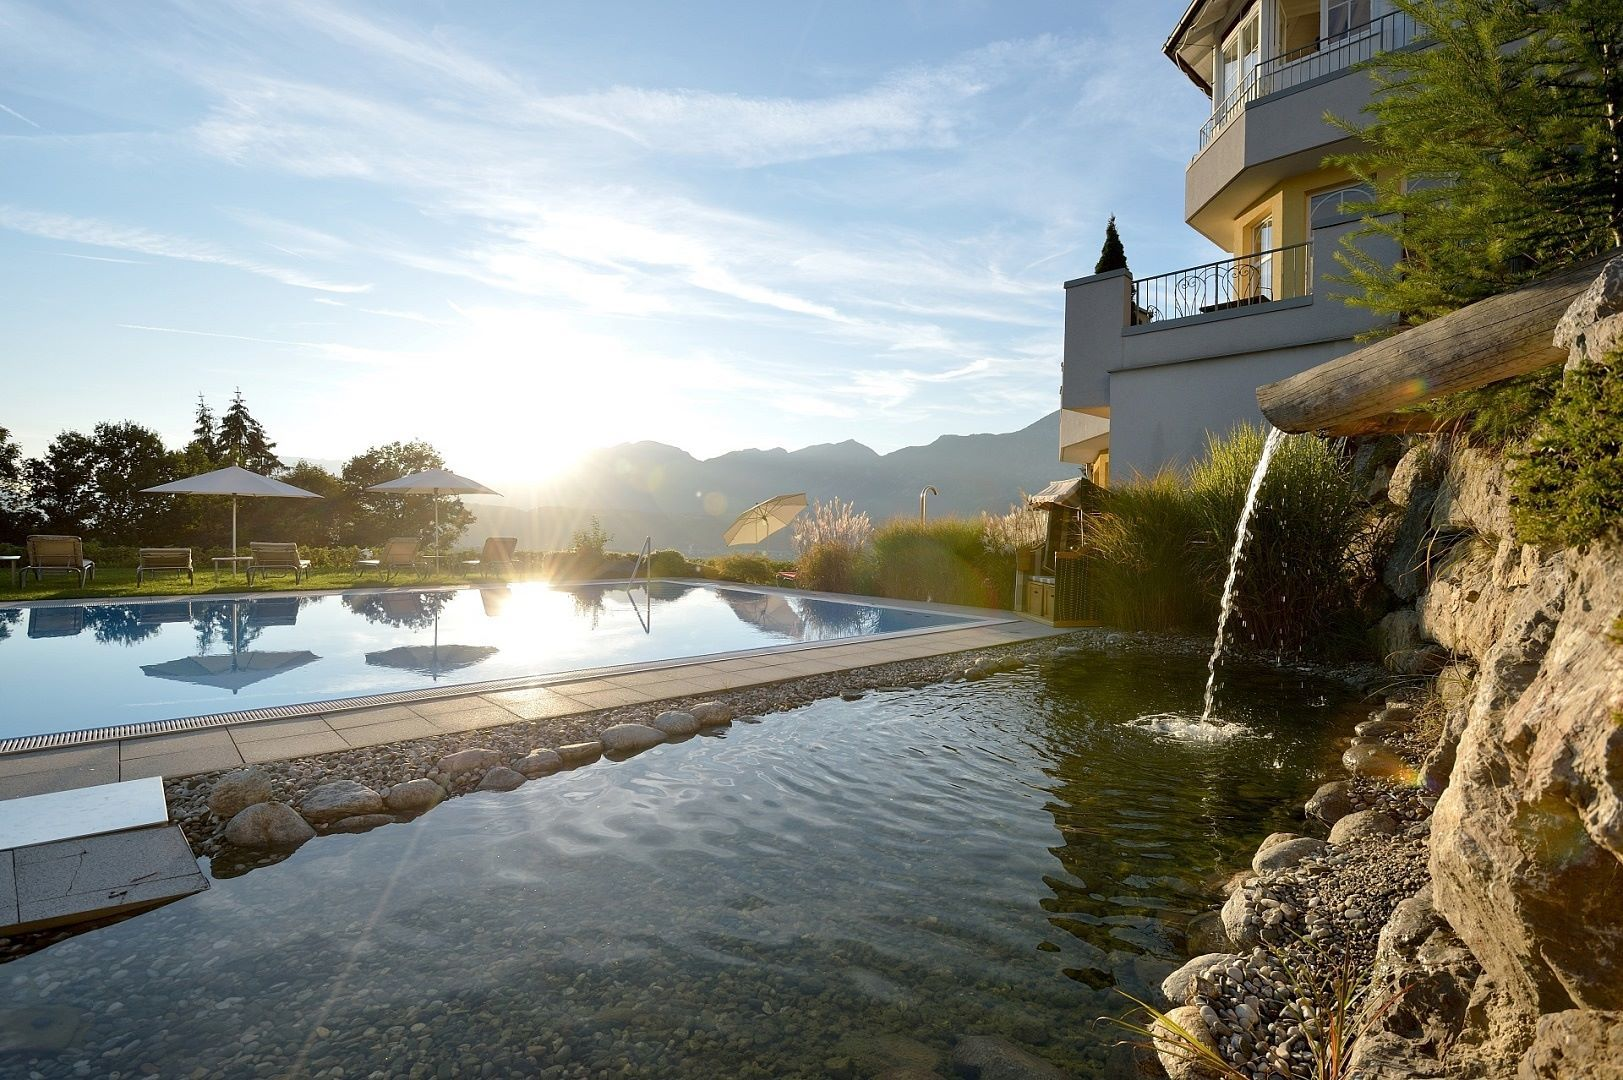 Hotel panorama royal bad h ring for Schwimmbad aussen